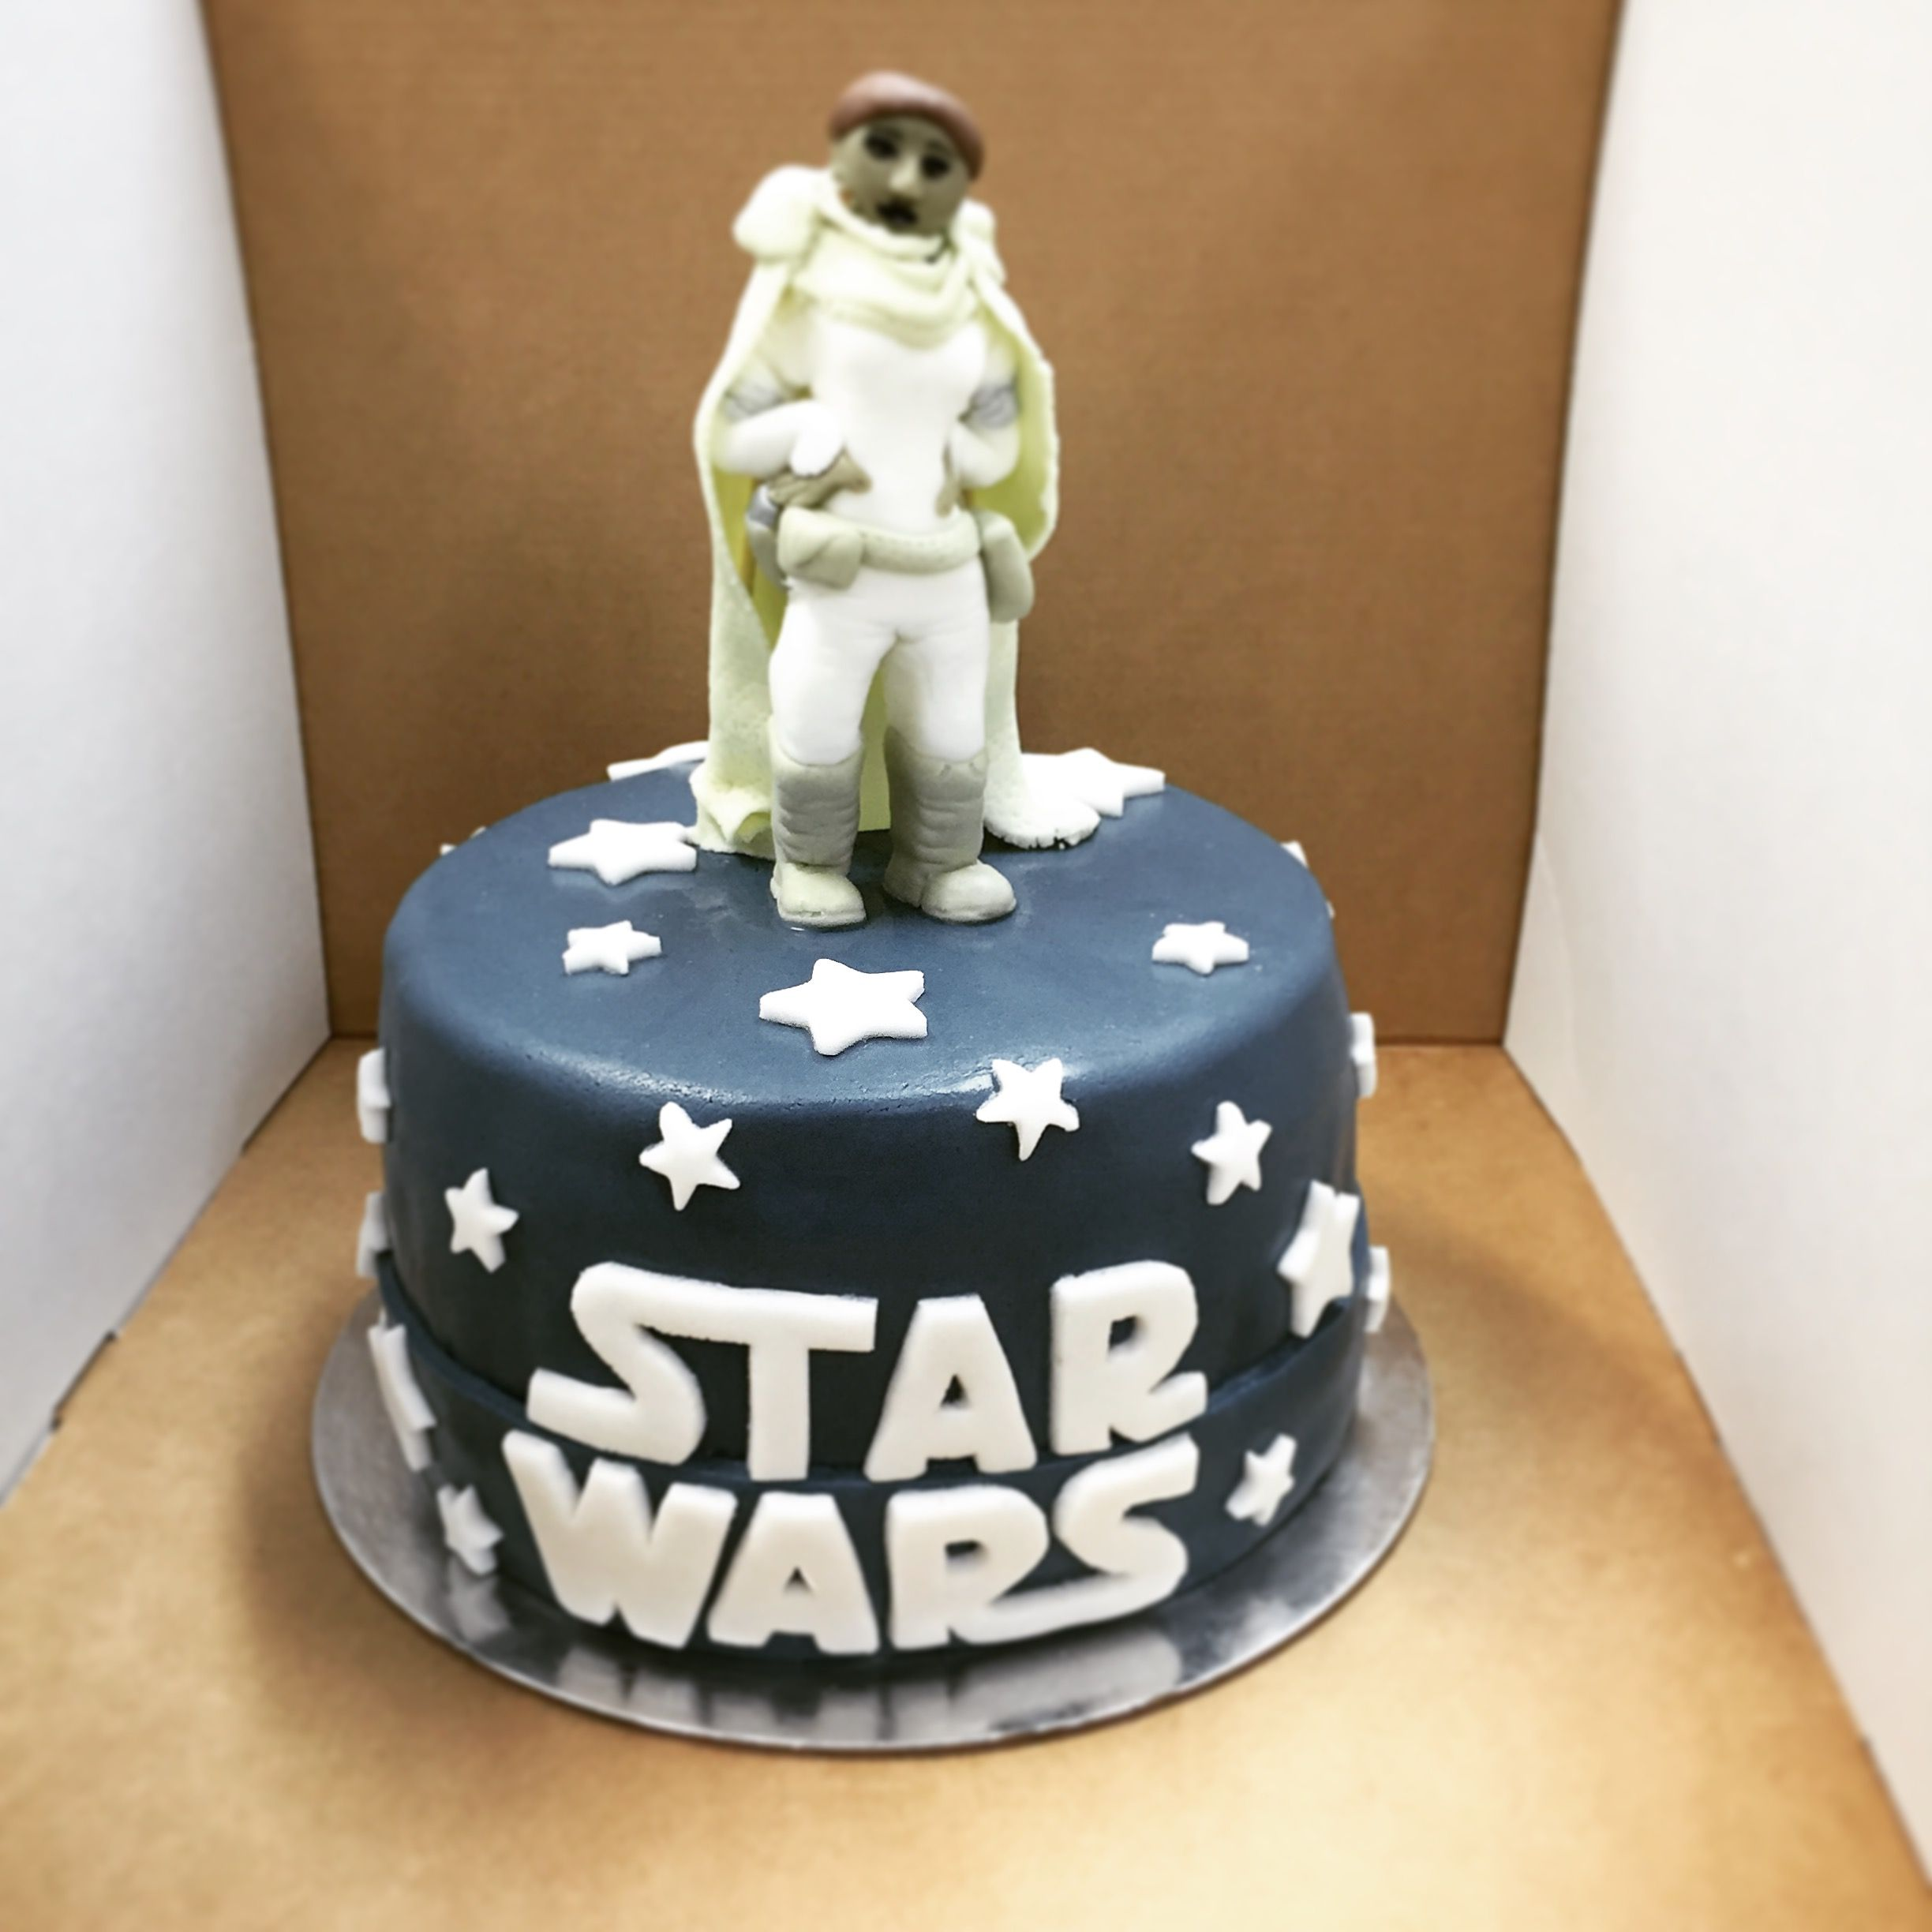 Vegan Star Wars cake Beneath the fondant icing is layers of